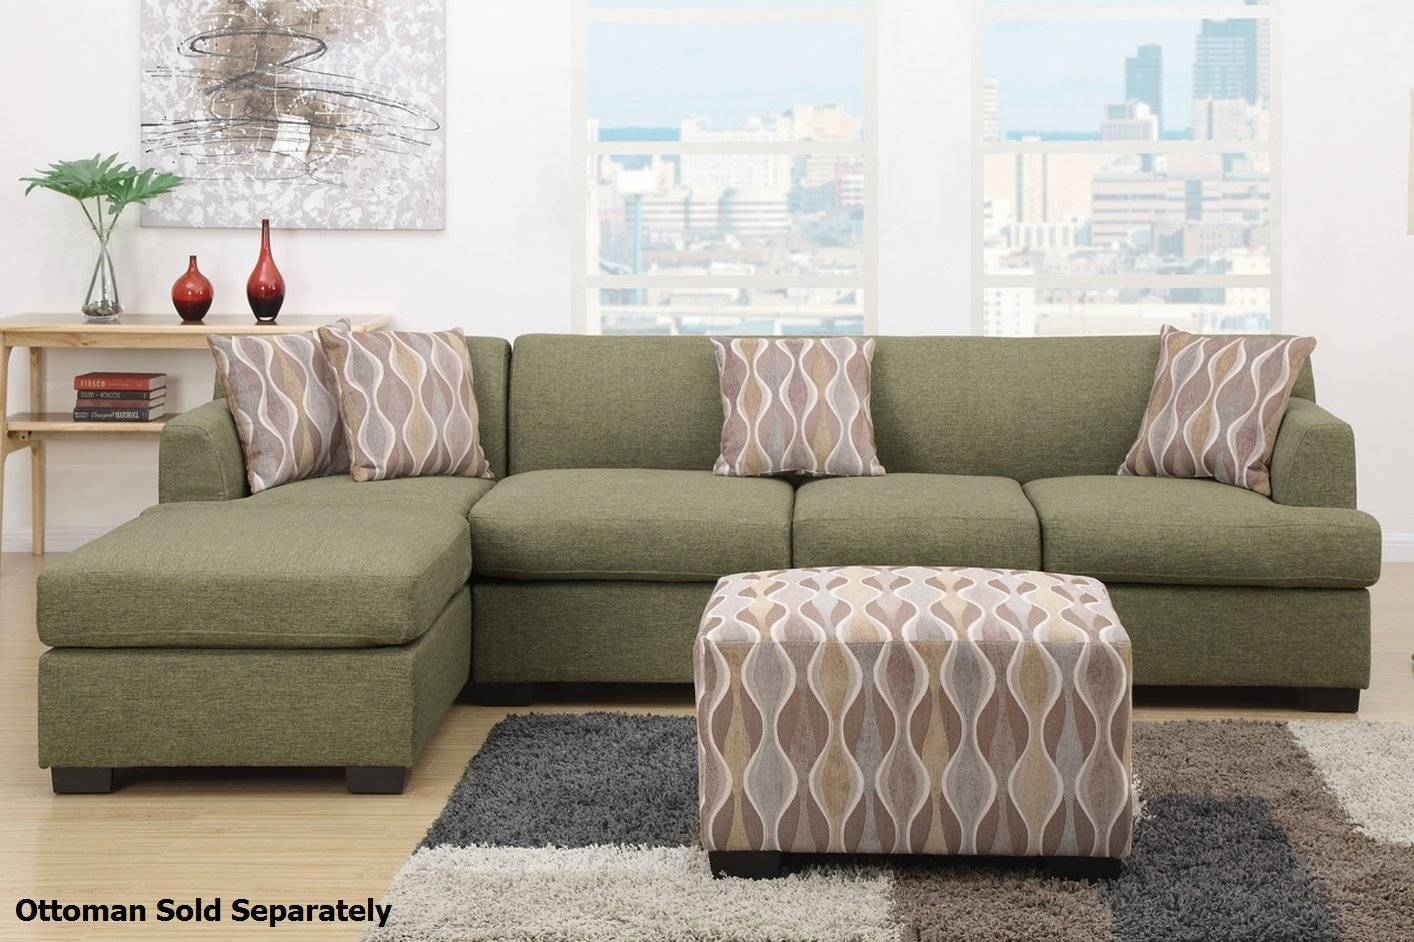 Sofas Center : Excellent Green Sectional Sofa Photos Inspirations inside Olive Green Sectional Sofas (Image 12 of 15)